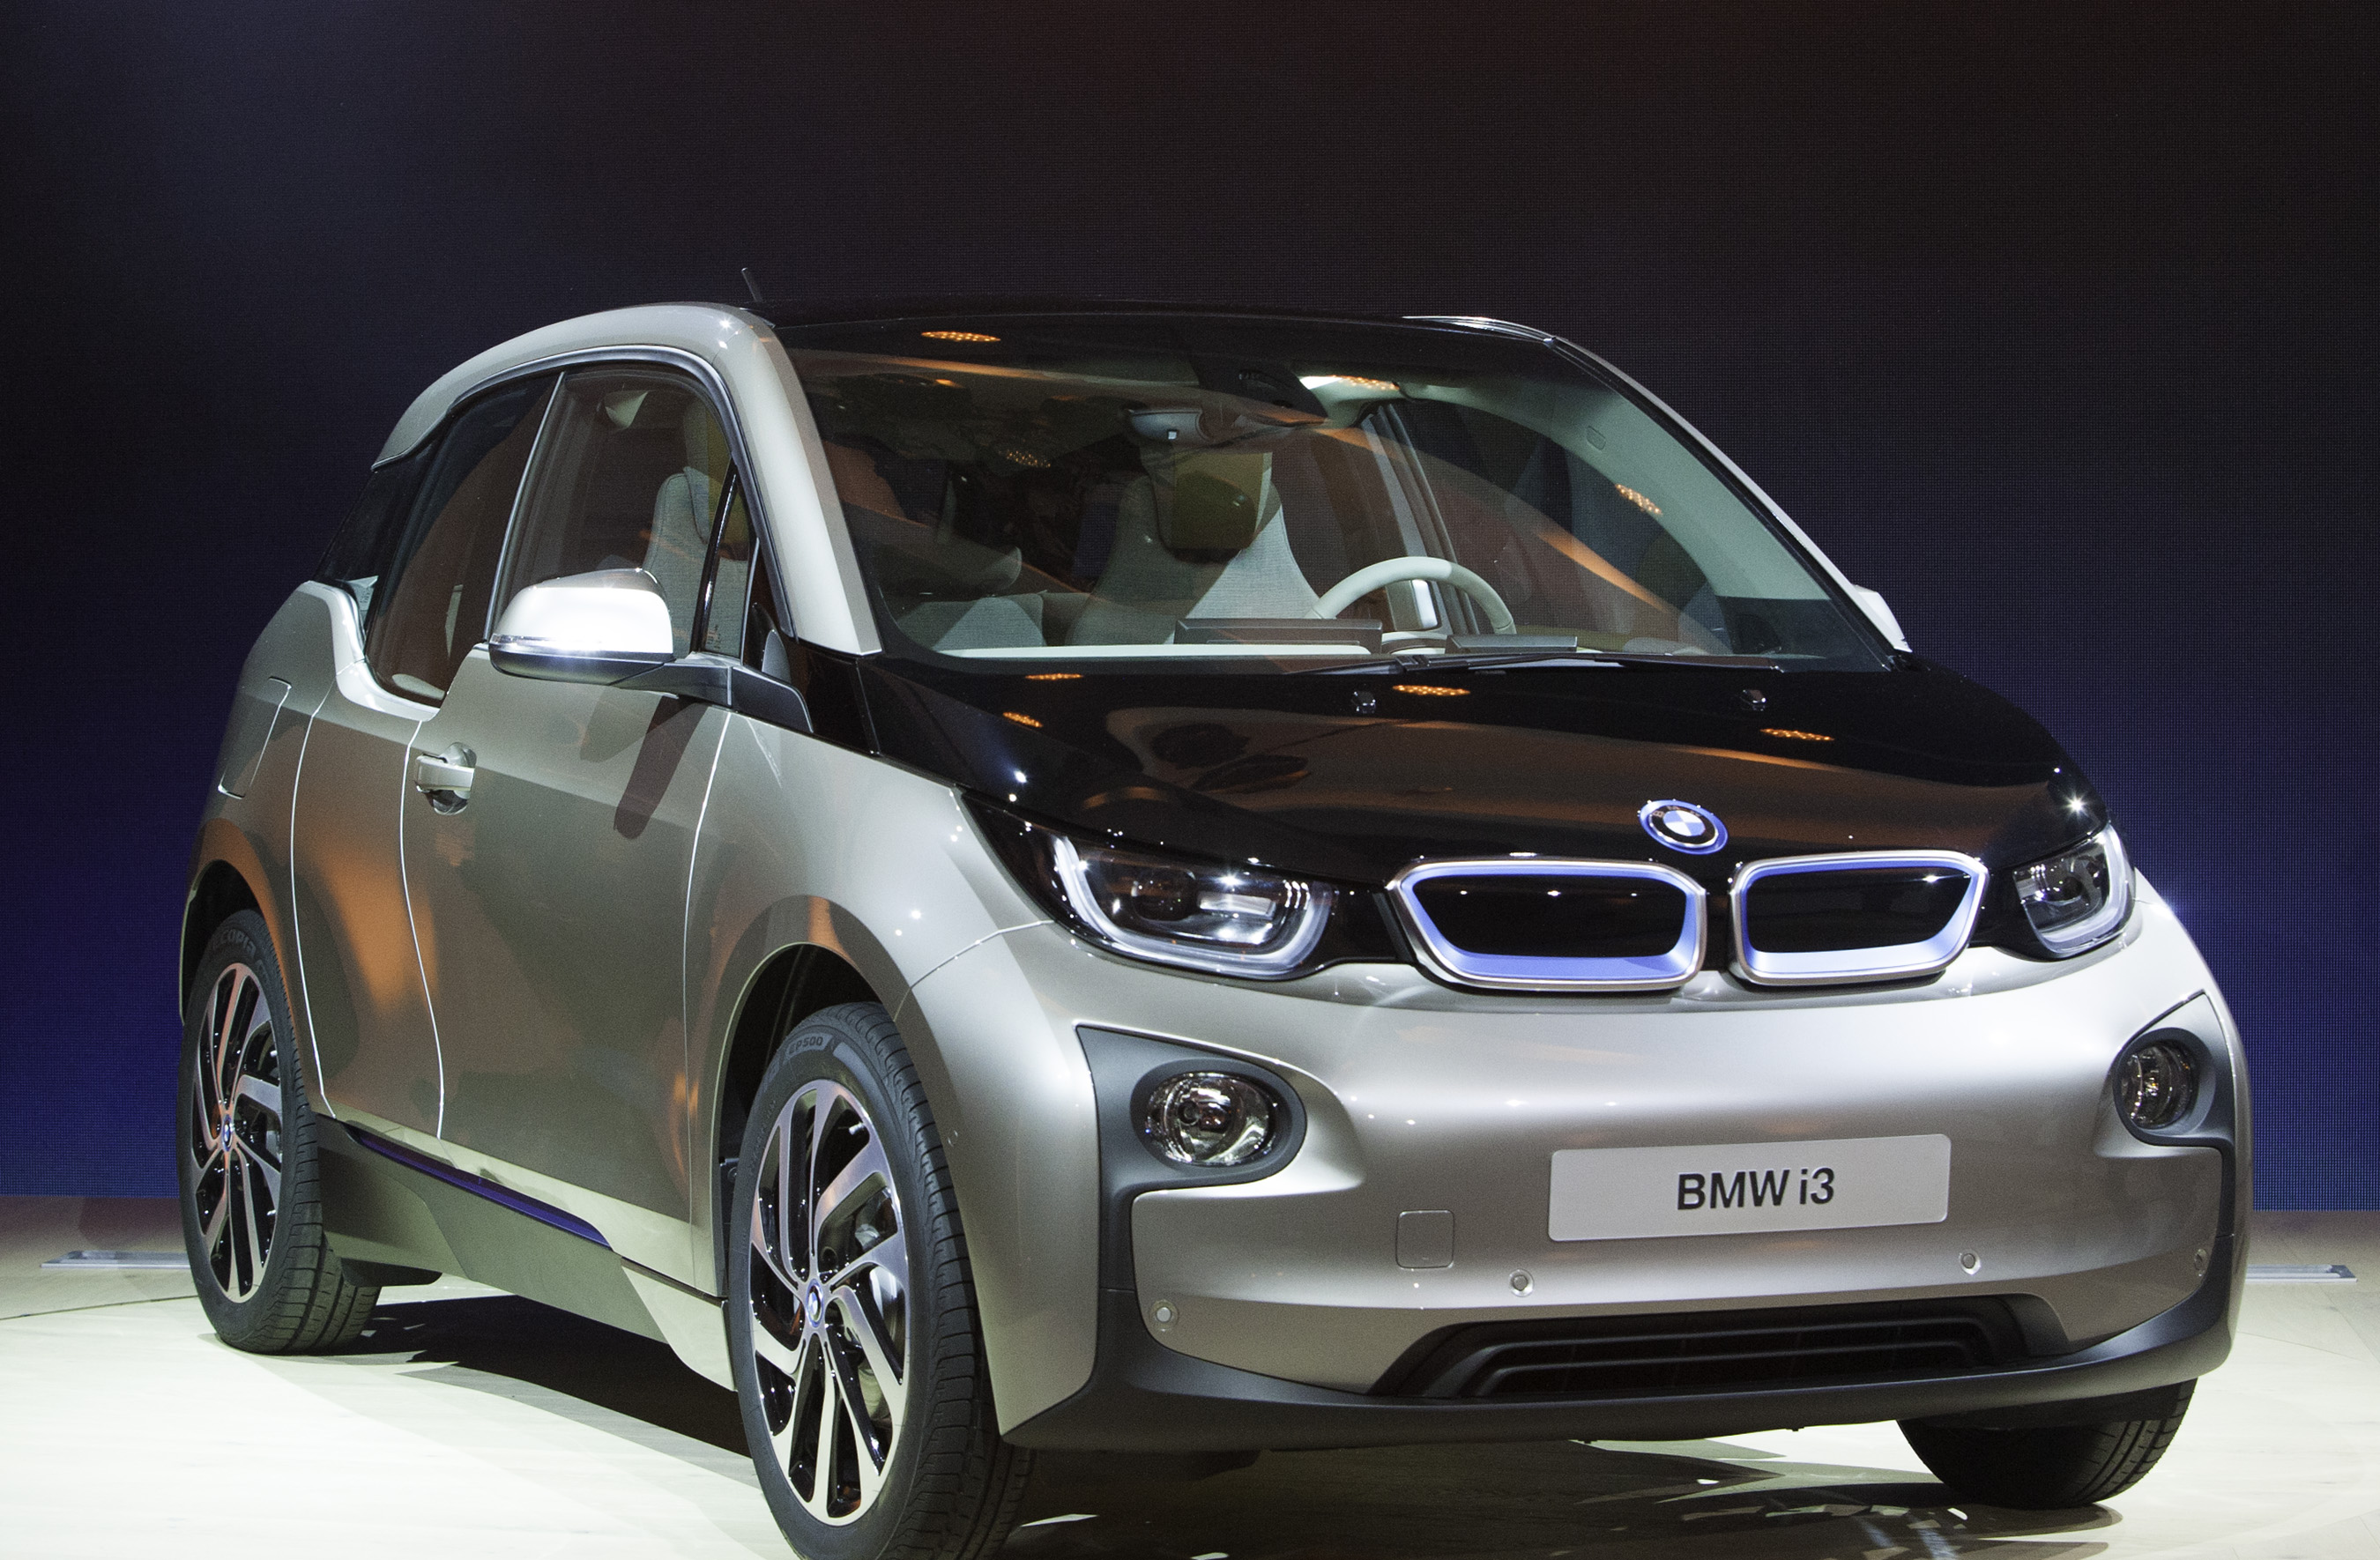 new car launches in july 2013On Monday July 29th BMW Unveiled the BMW i3 Production Model to